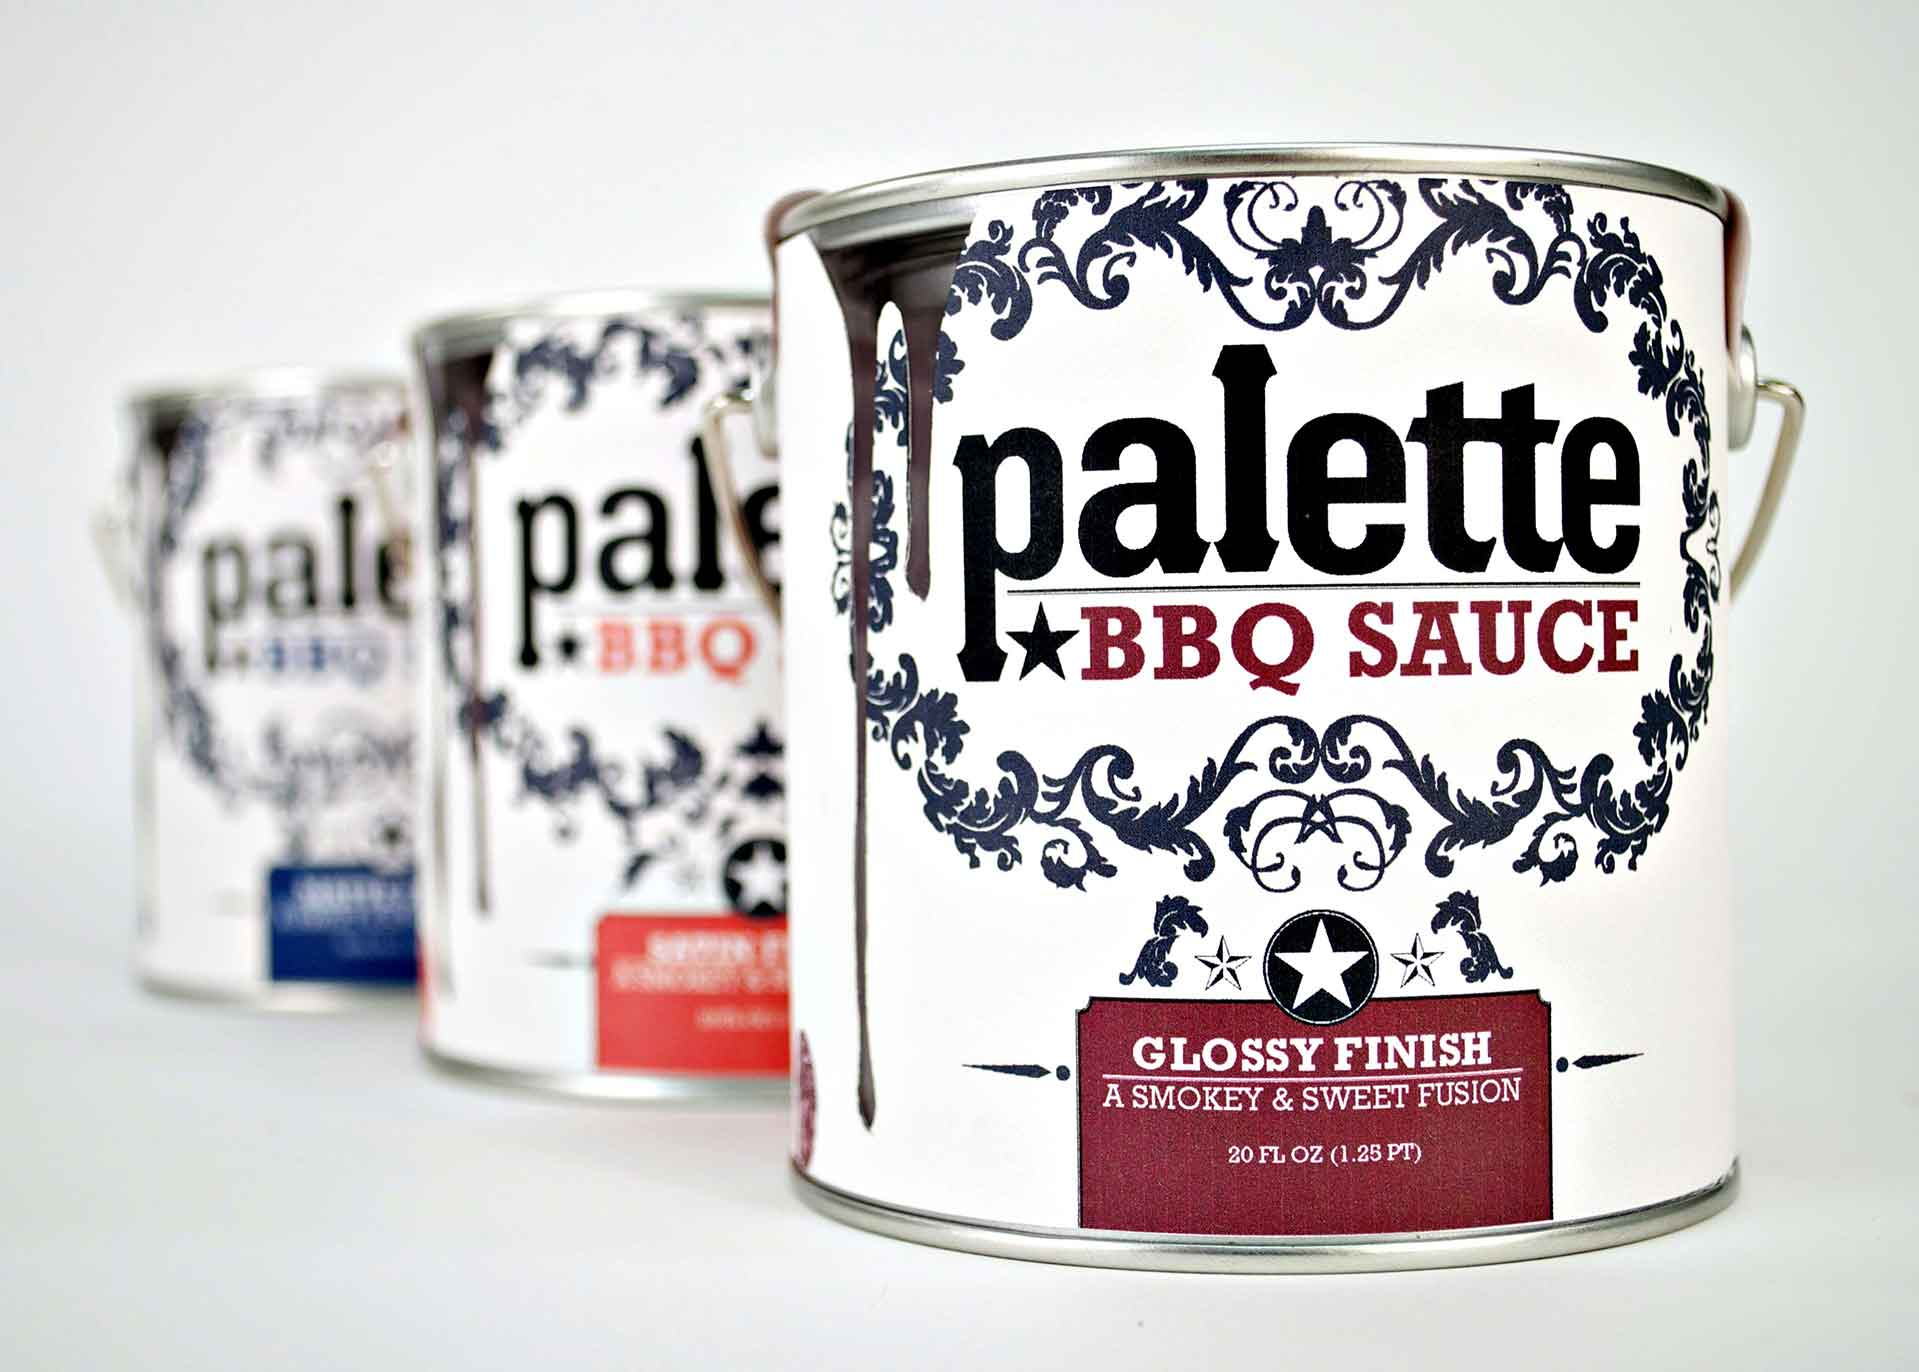 Palette BBQ Sauce Package Design